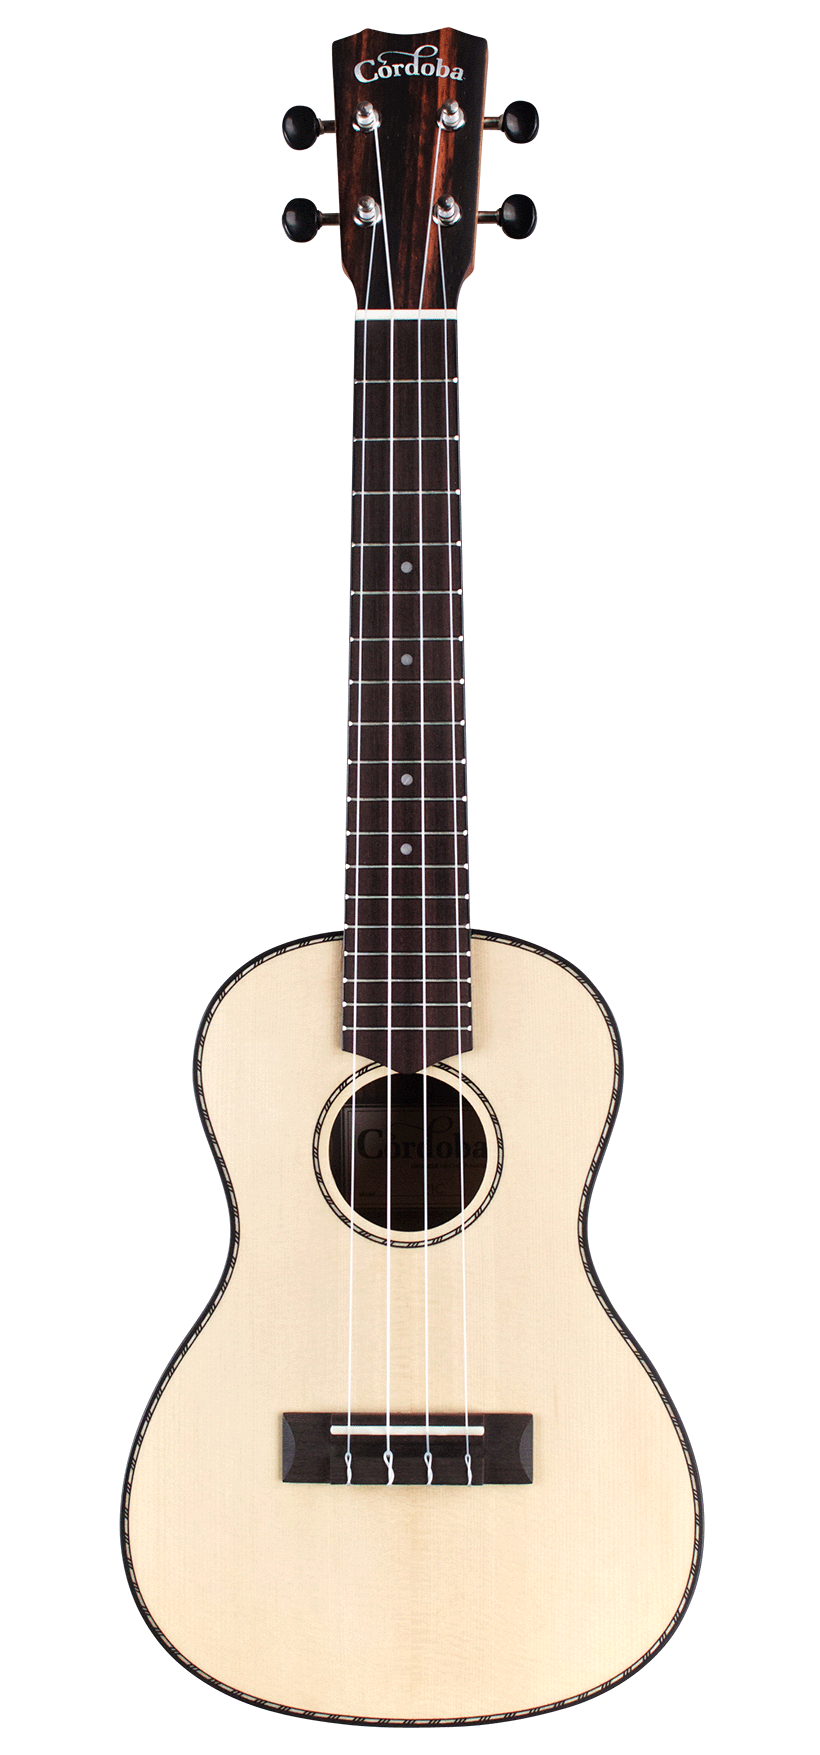 Cordova 21C Concert Ukulele In-Store Pickup Only